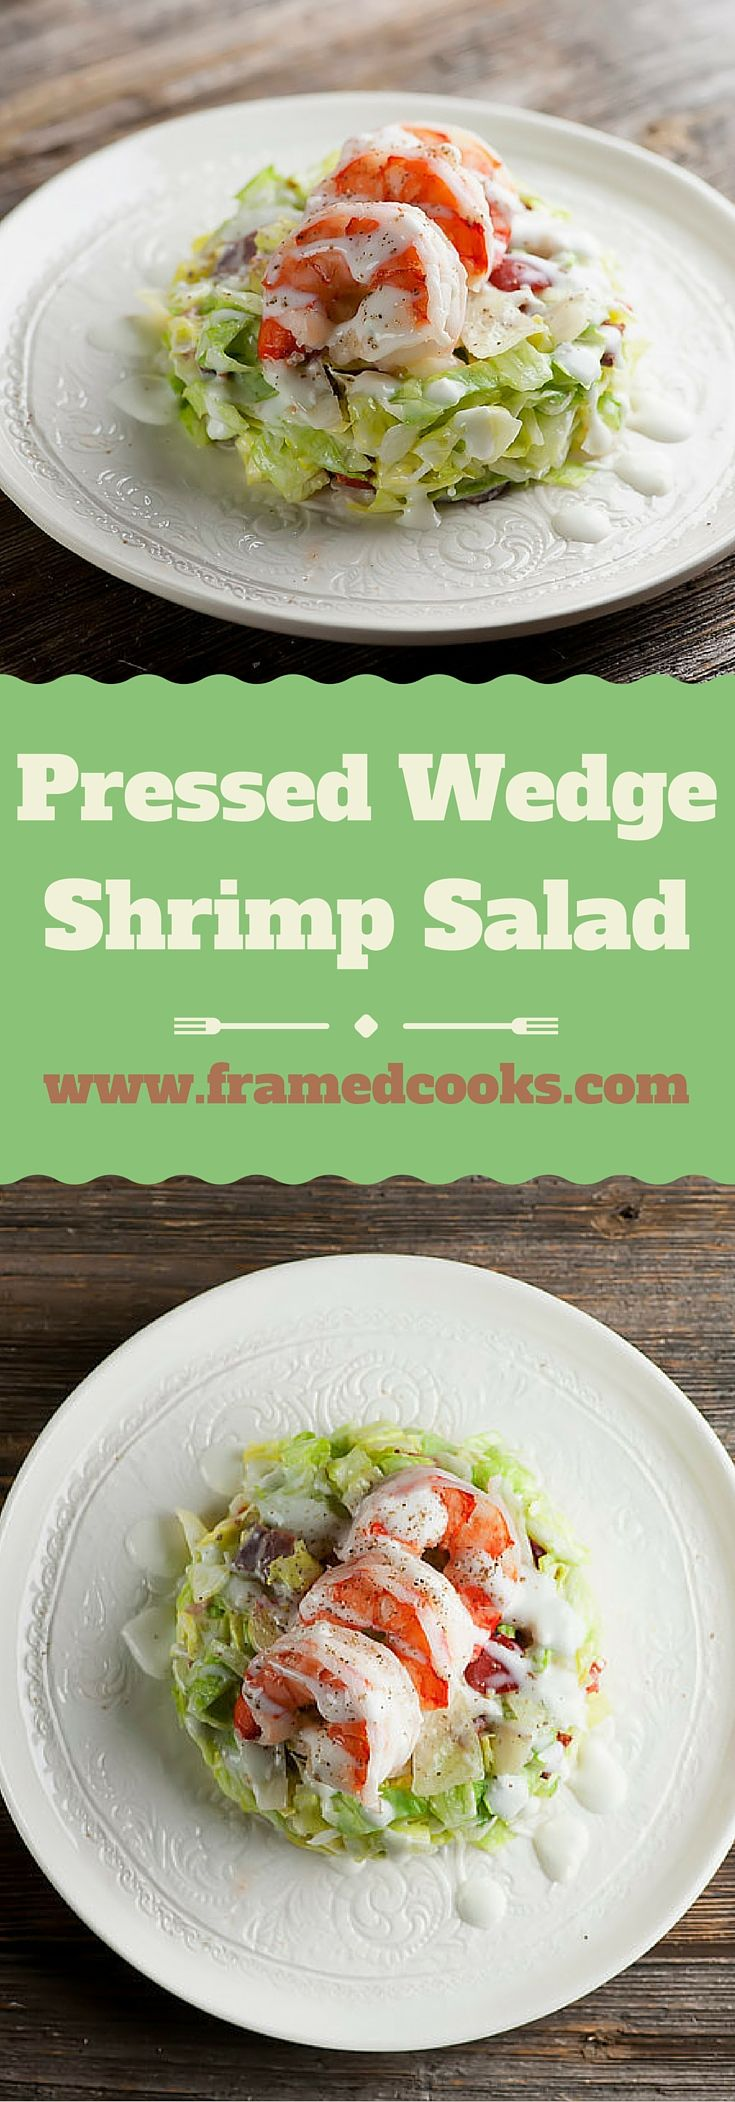 Jazz up your wedge salad with this recipe that calls for pressing it together and topping it with shrimp!